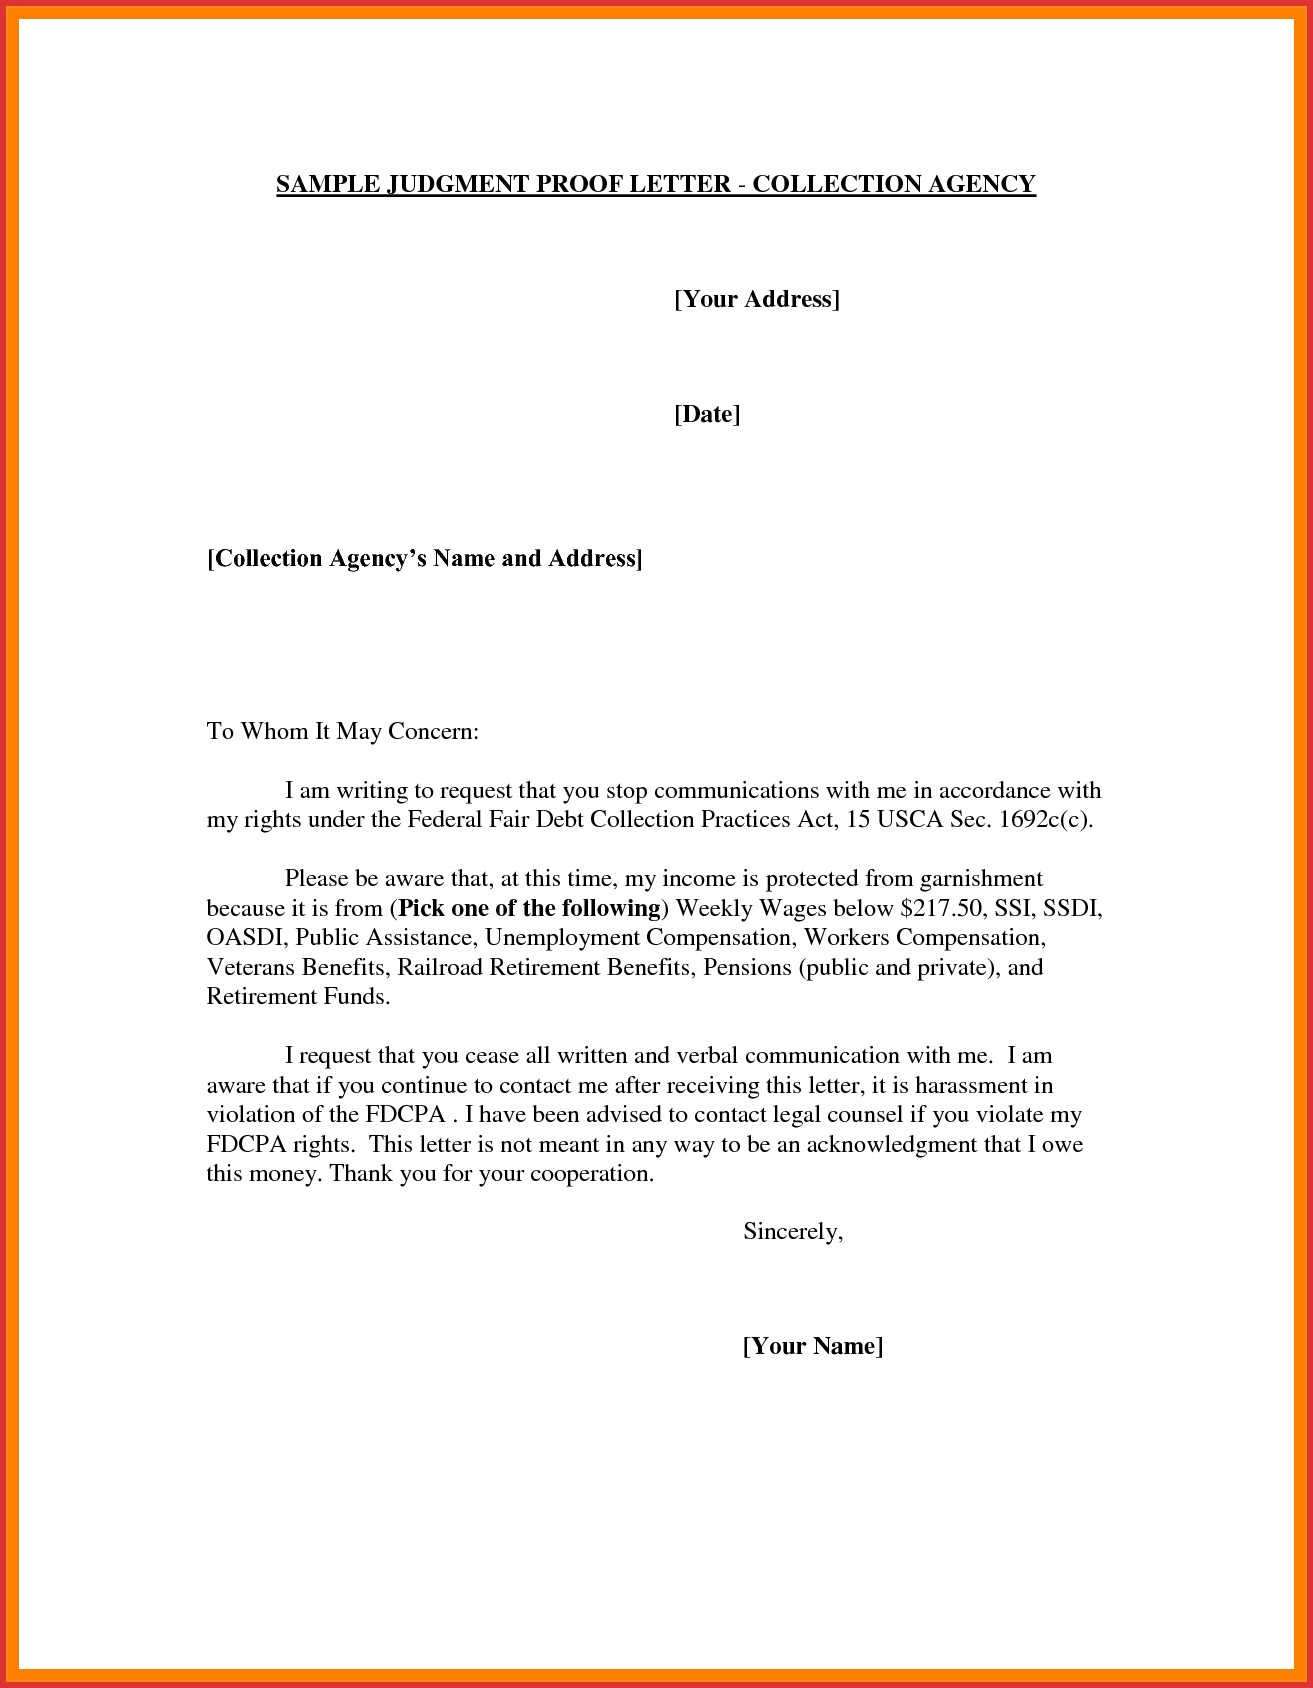 Judgement Proof Letter Template - Example Letter Proof Save Unique Address Proof Letter format